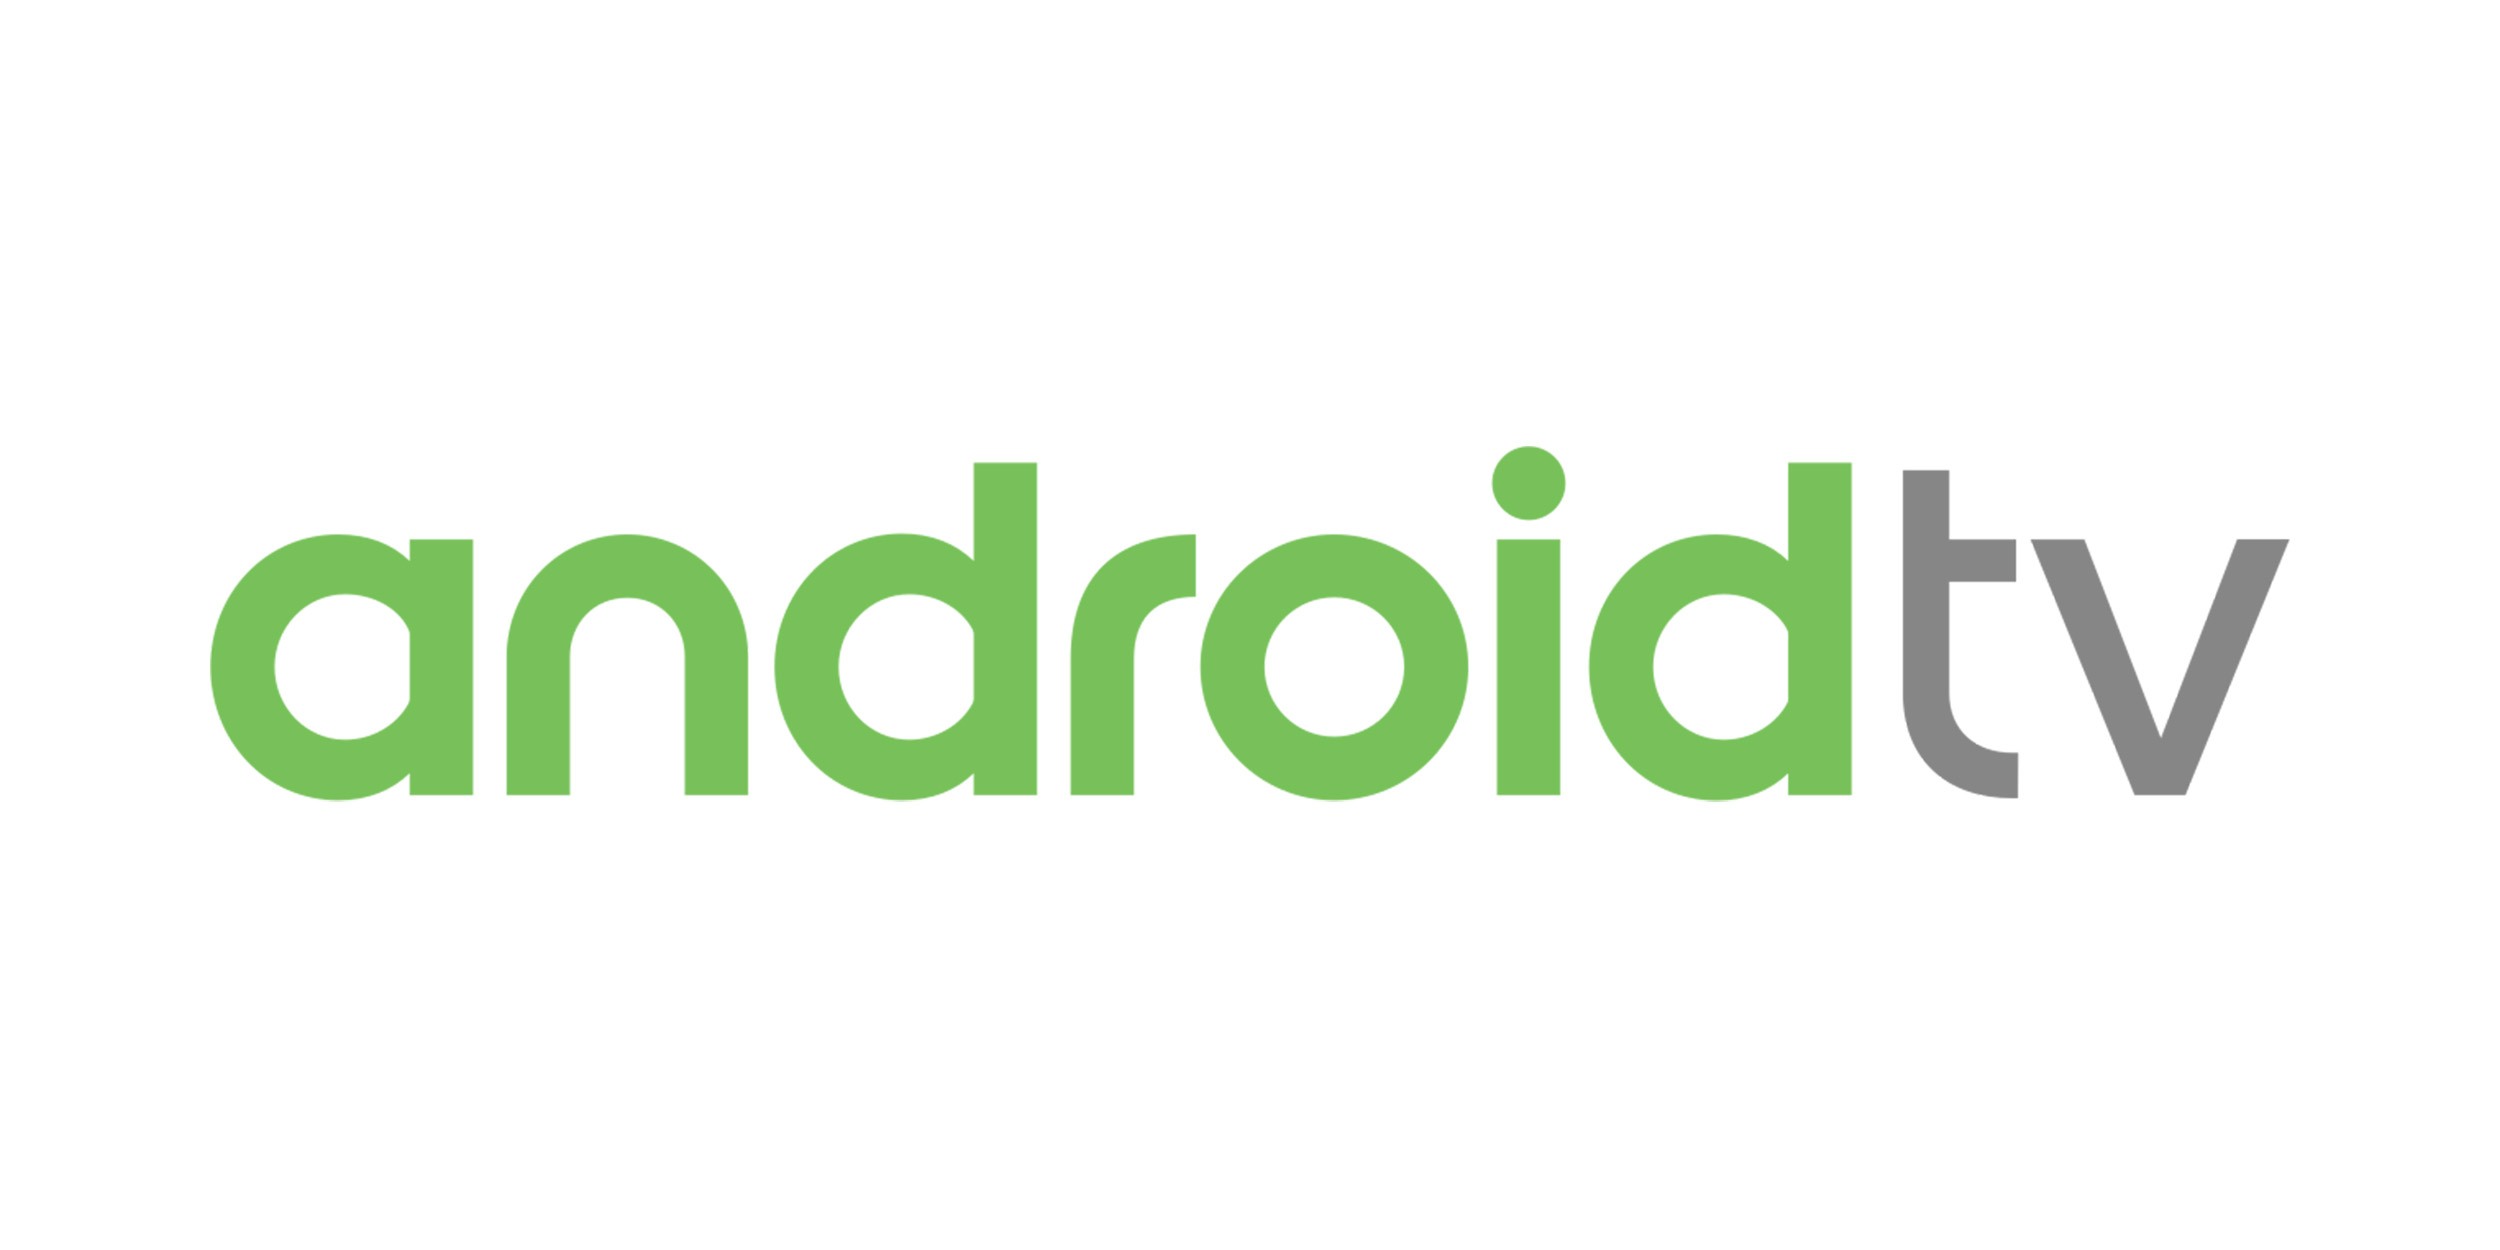 Android TV makes up 1 of every 10 Smart TVs globally, trails behind Samsung and Roku